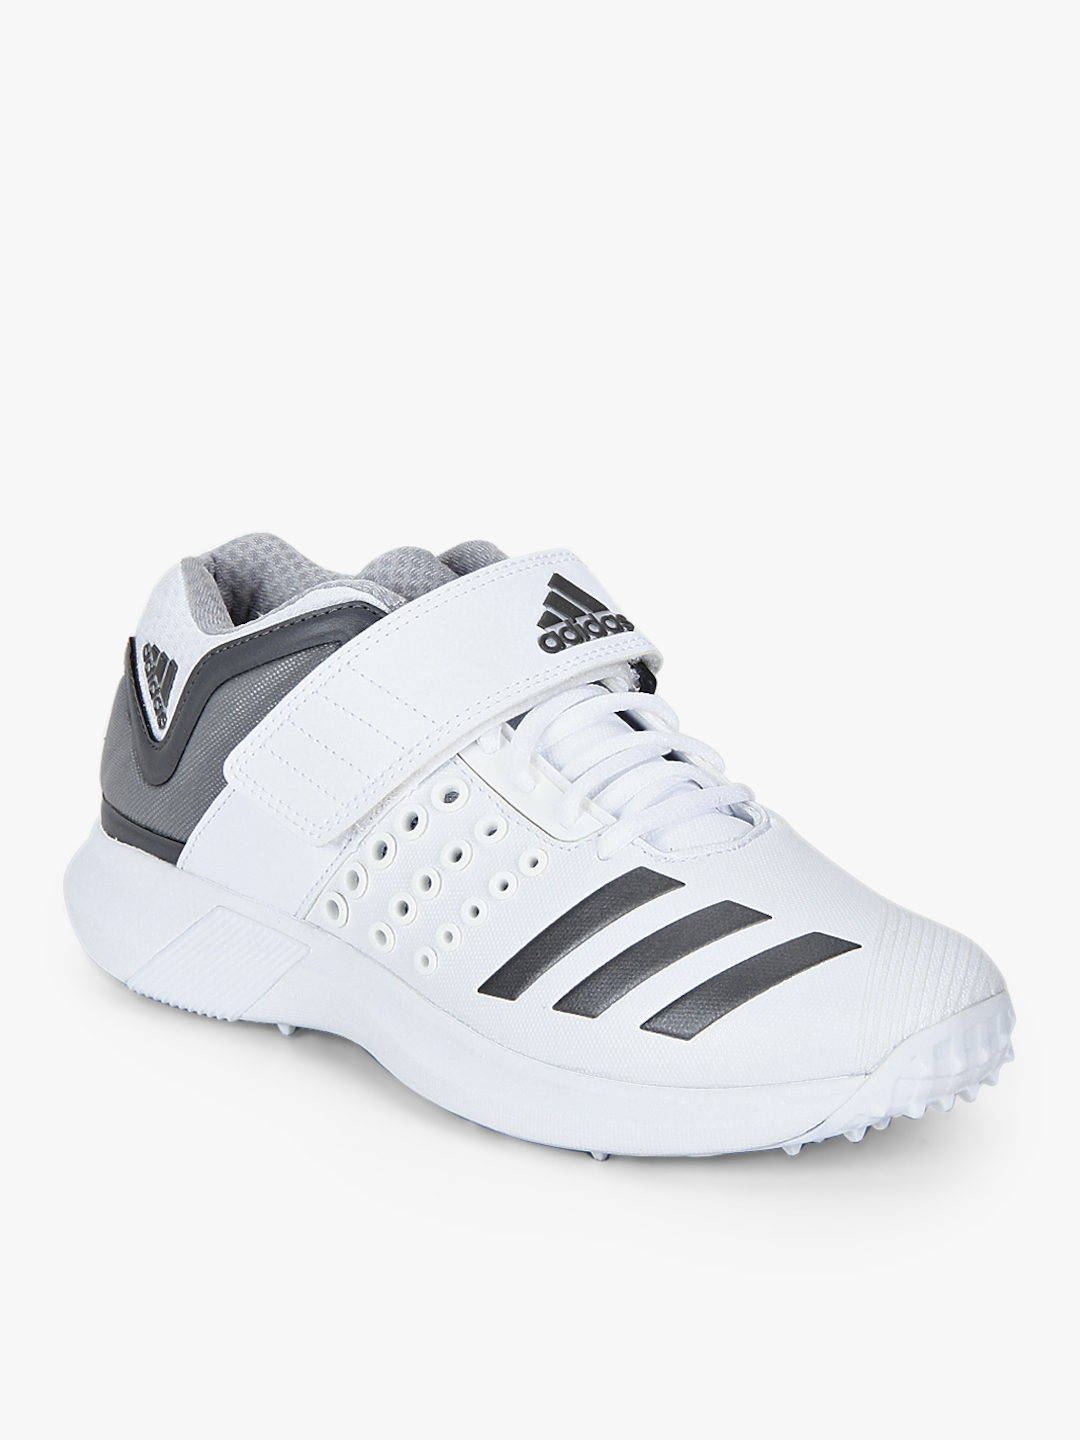 Buy Adipower Vector Mid White Cricket Shoes - Sports Shoes for Men ... c4e46cf92